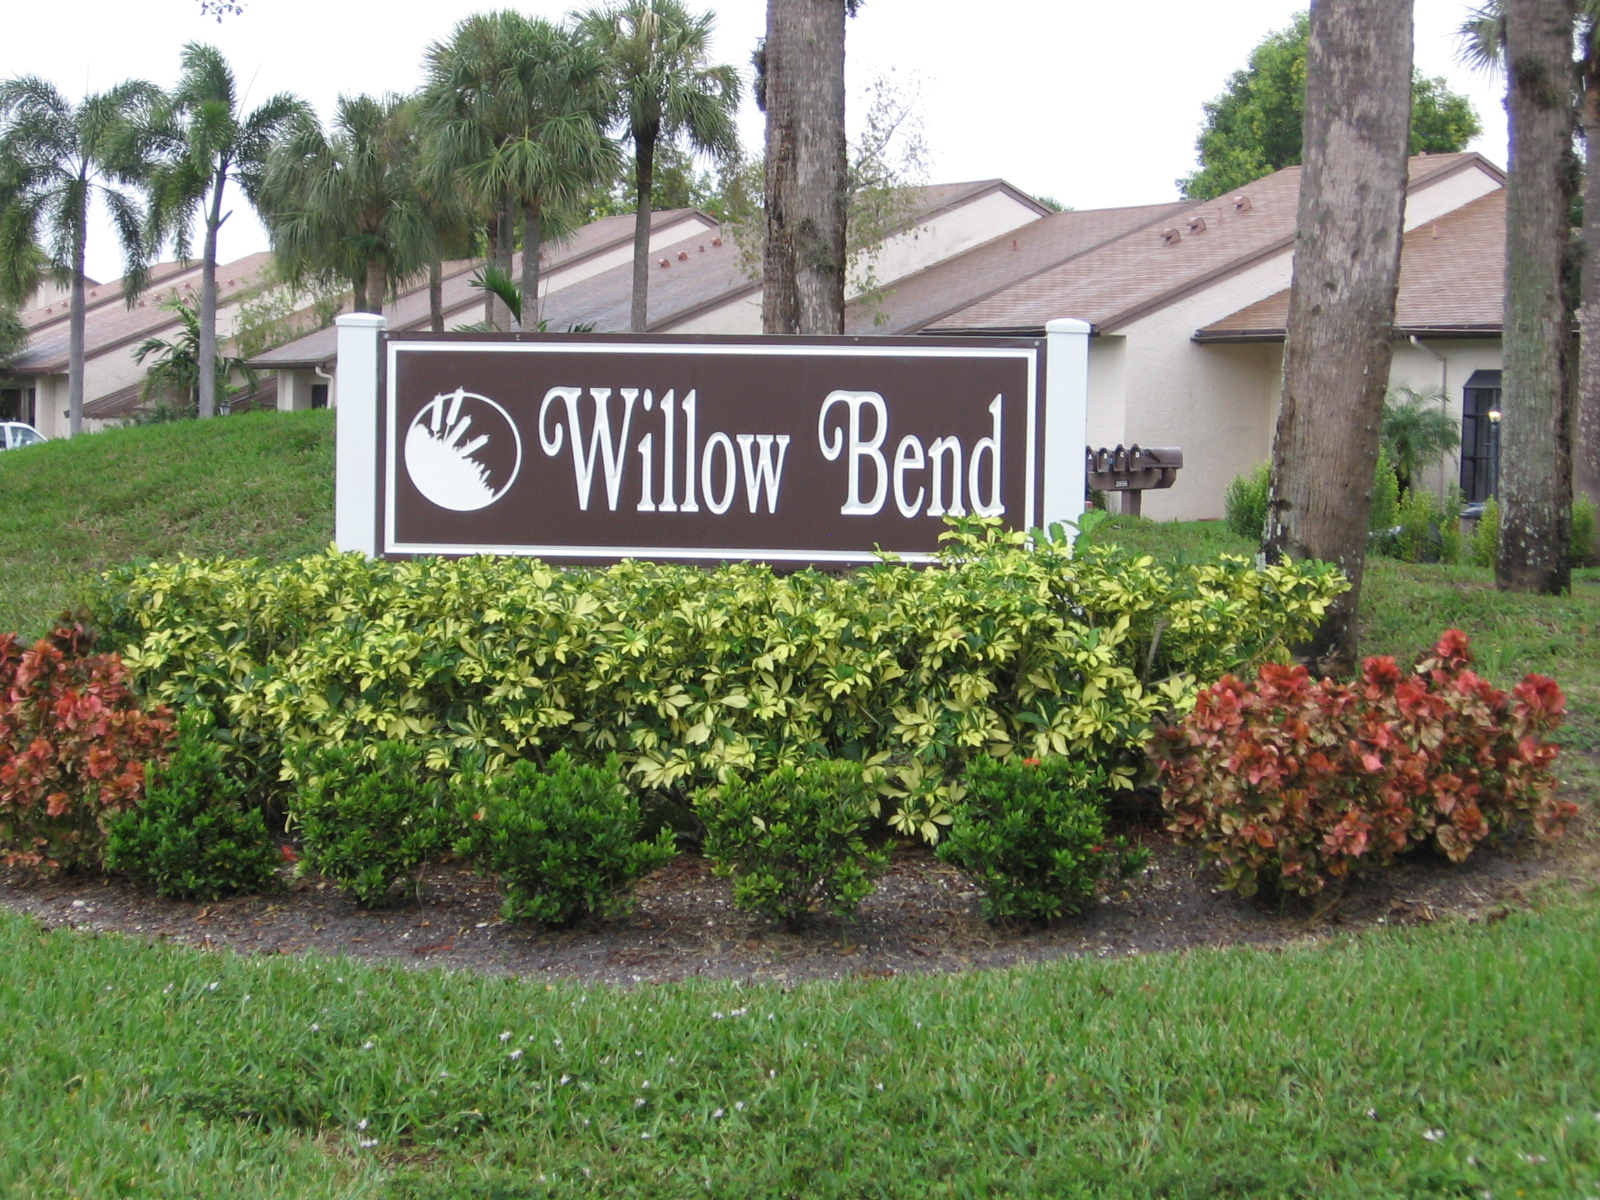 Even on a rainy day this community still shines—-Willow Bend | South  Florida Living